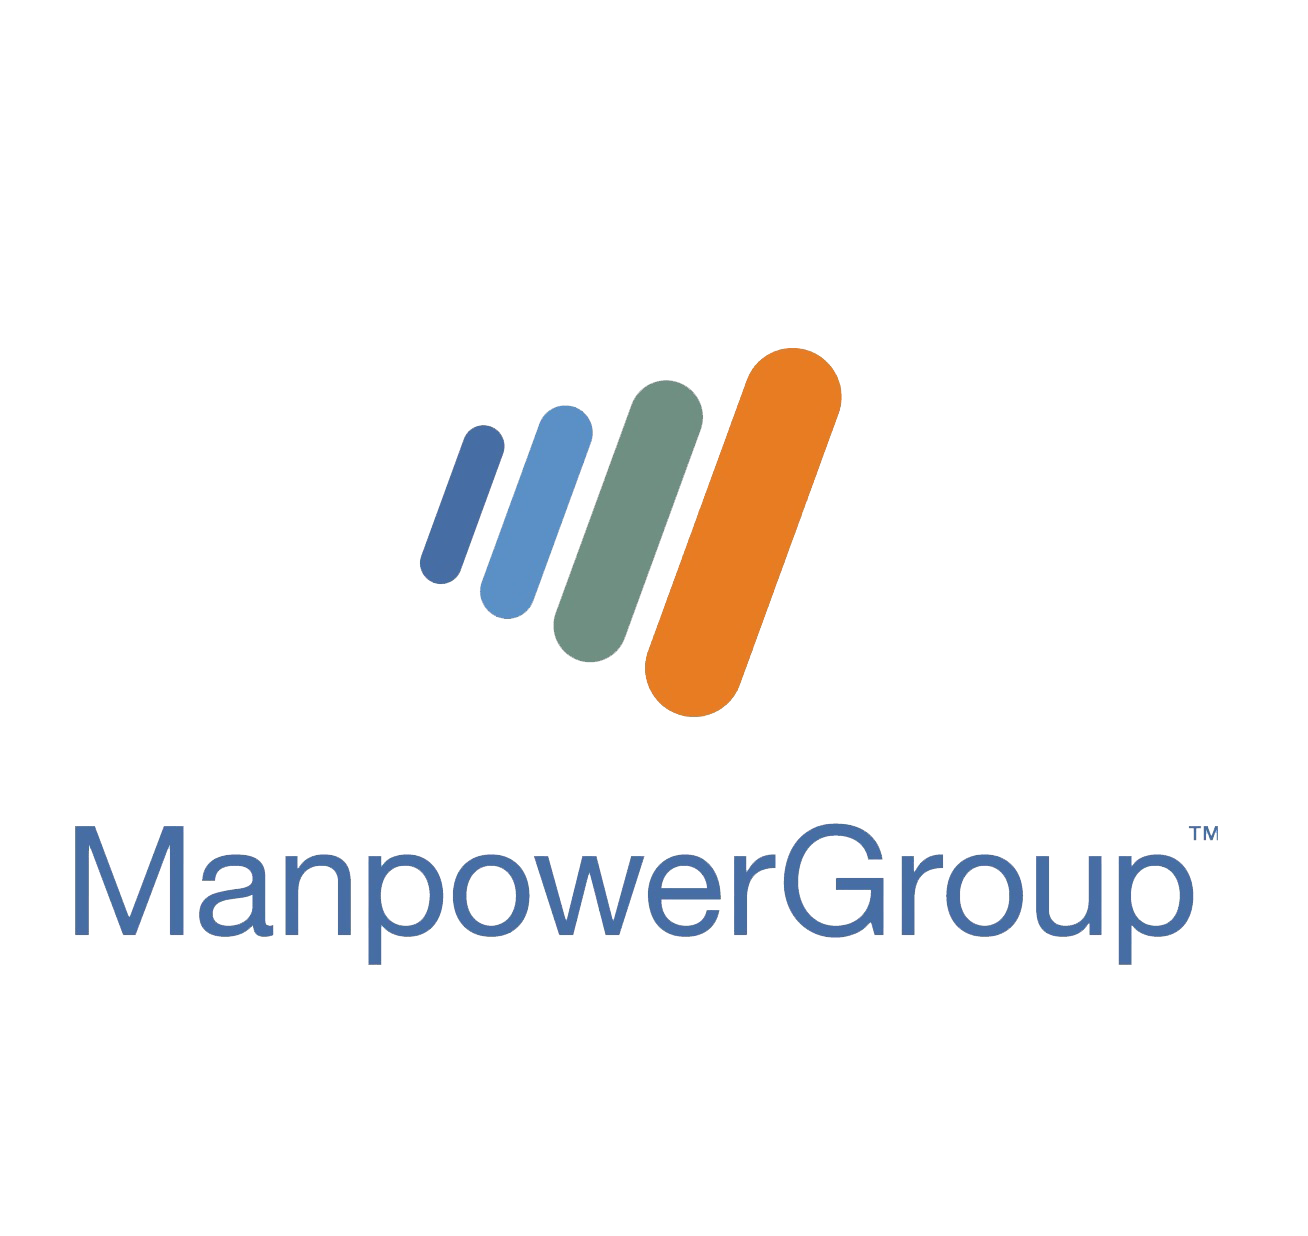 man power logo